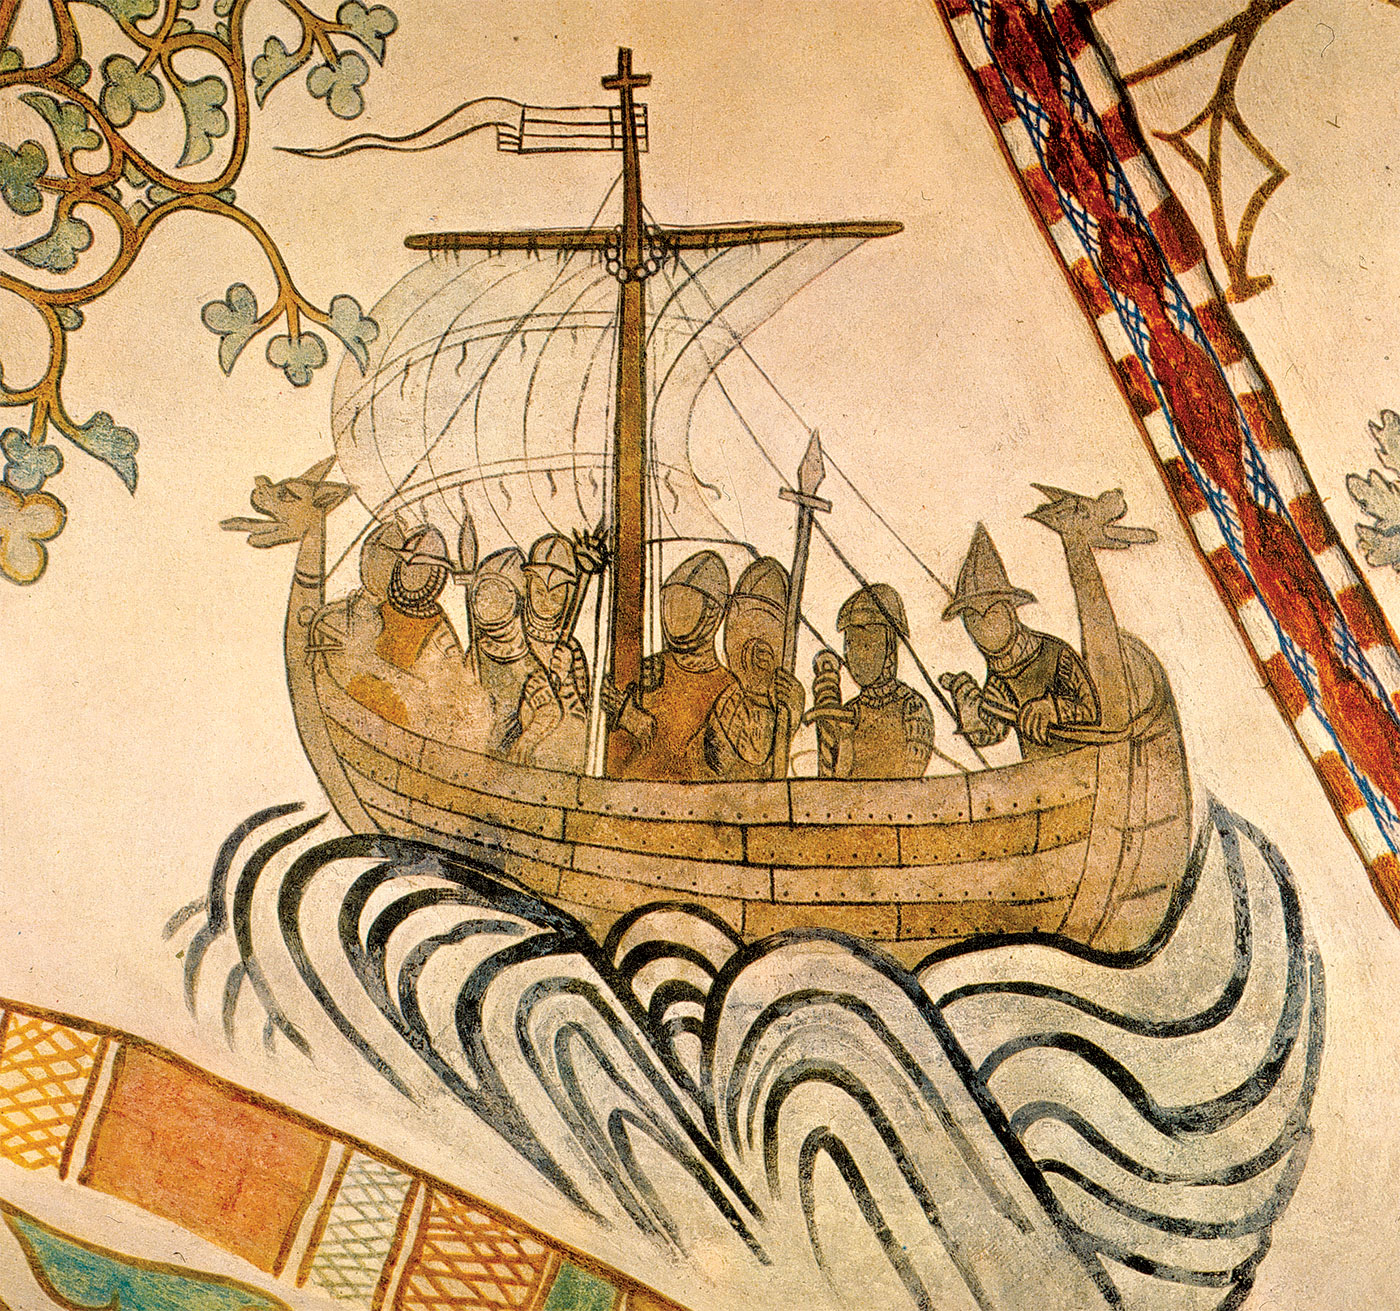 Viking ship carrying Harold III of Norway against his half-brother Olaf II in 1030, c.1375.